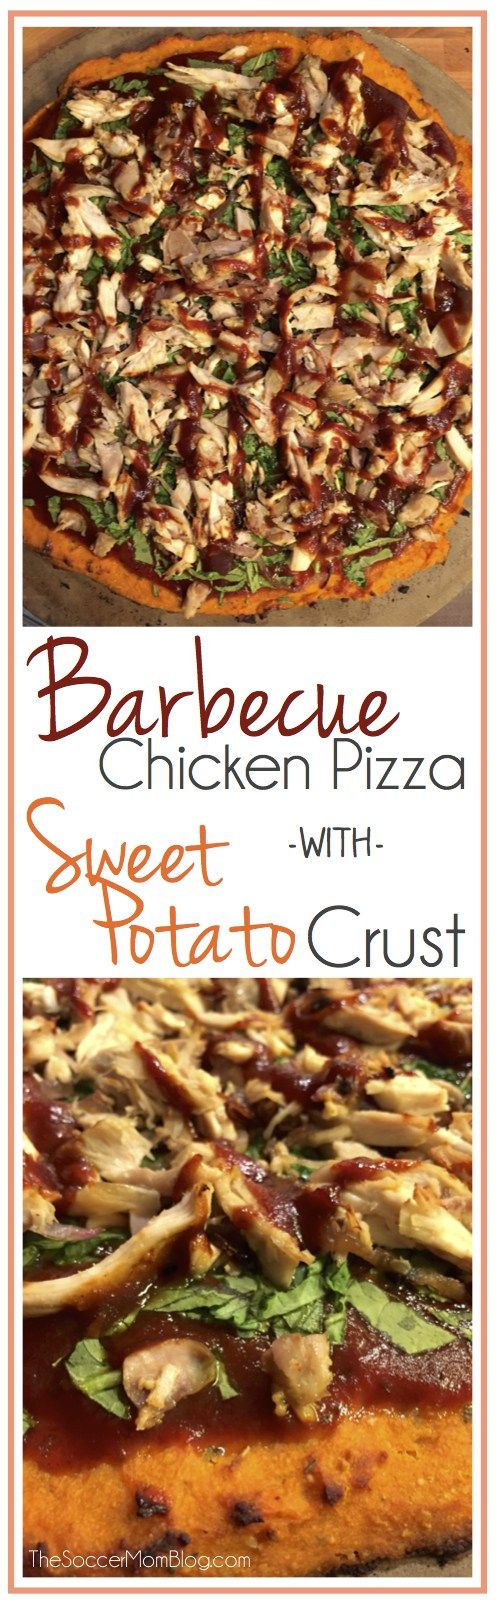 Barbecue Chicken Pizza with Sweet potato crust is gluten free, dairy free and packed with protein and veggies. It takes a while to make so plan for more than an hour.